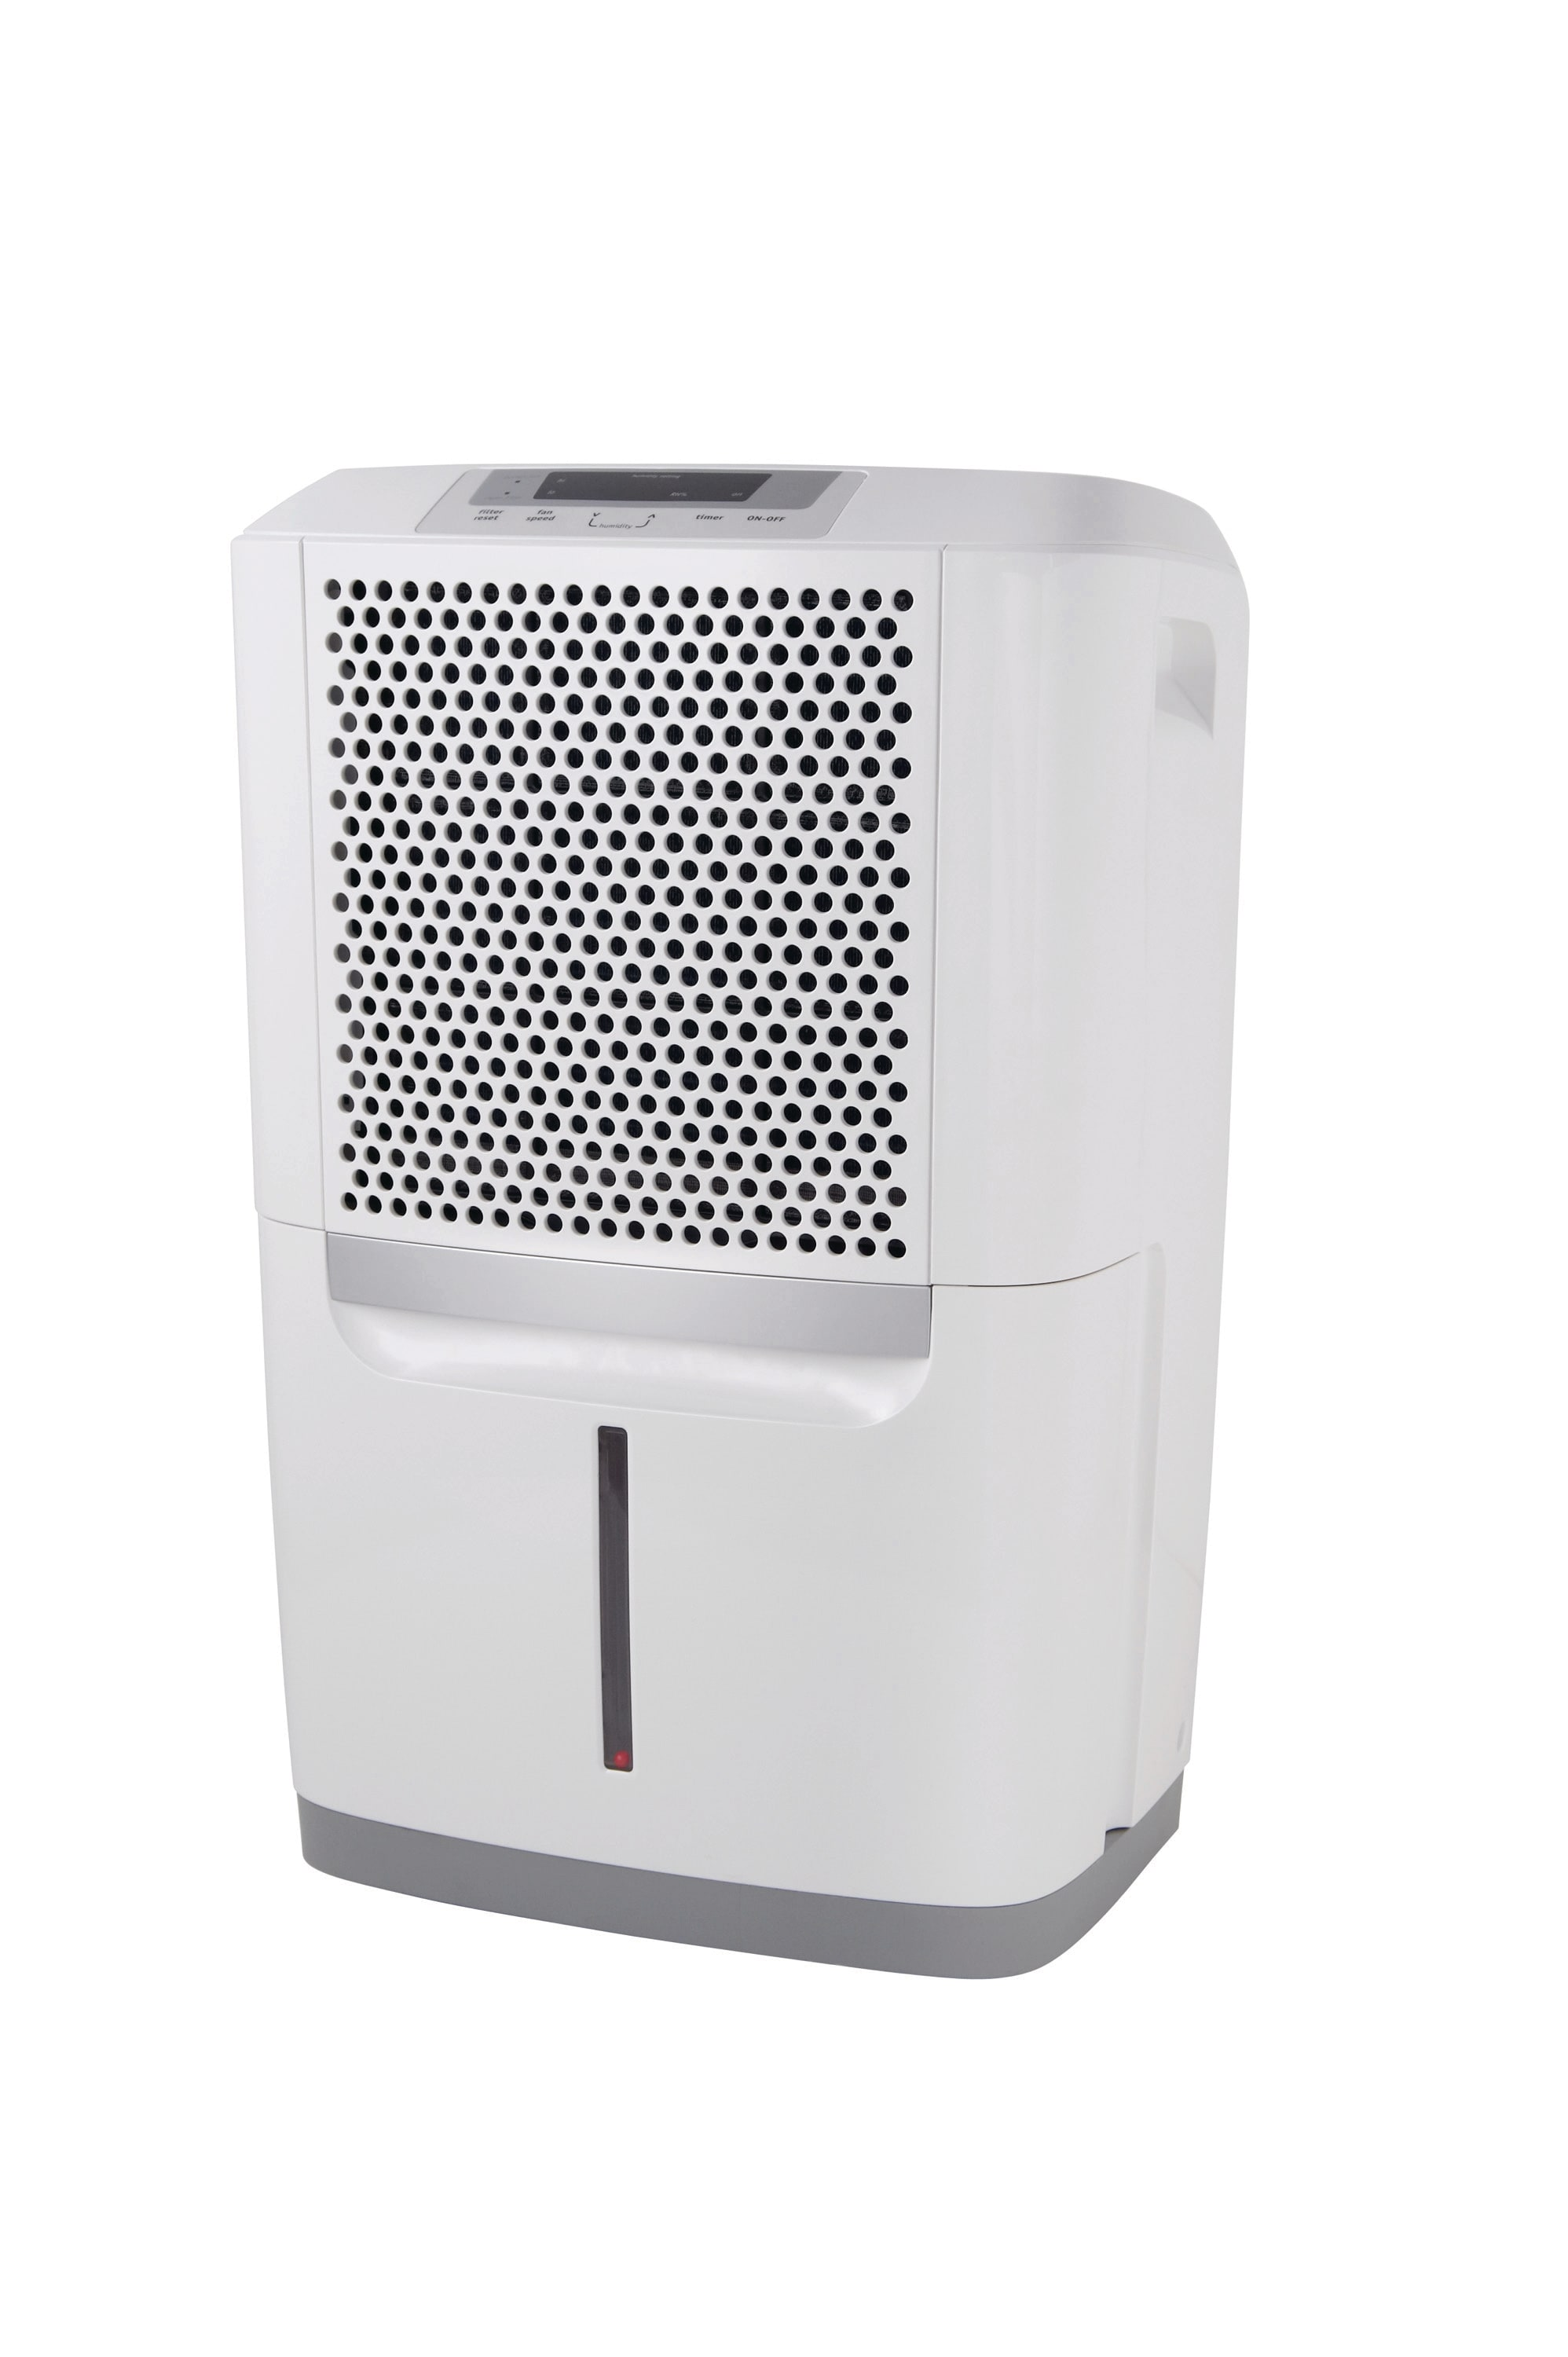 Model: FAD504DWD | Medium Room 50 Pint Capacity Dehumidifier